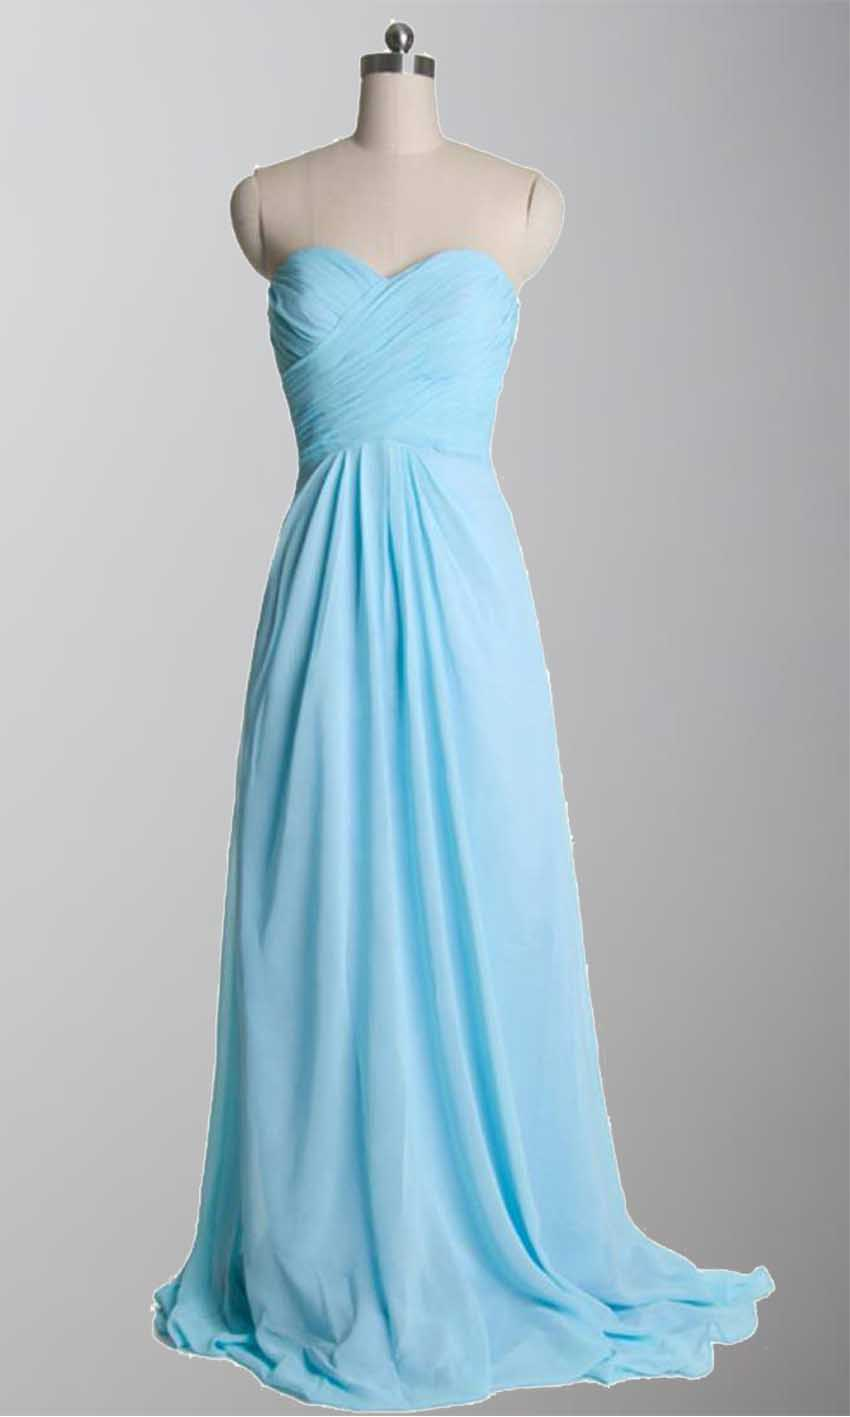 Cross Sequin Band Back Chiffon Train Prom Dress KSP310 [KSP310] - £89.00 : Cheap Prom Dresses Uk, Bridesmaid Dresses, 2014 Prom & Evening Dresses, Look for cheap elegant prom dresses 2014, cocktail gowns, or dresses for special occasions? kissprom.co.uk offers various bridesmaid dresses, evening dress, free shipping to UK etc.